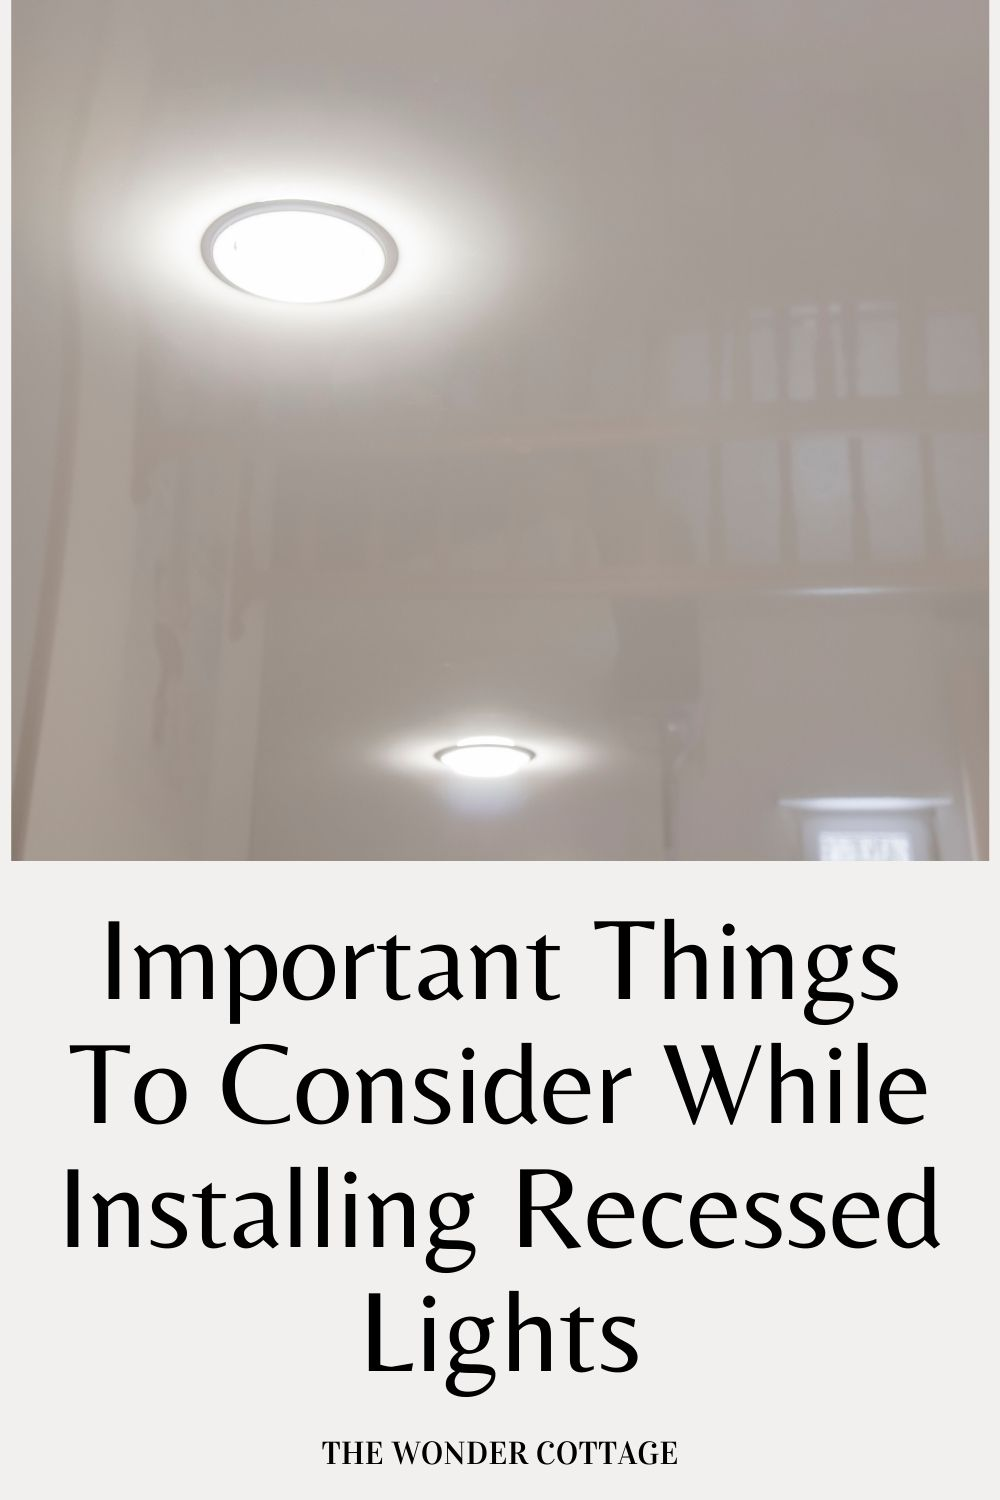 important things to consider while installing recessed lights